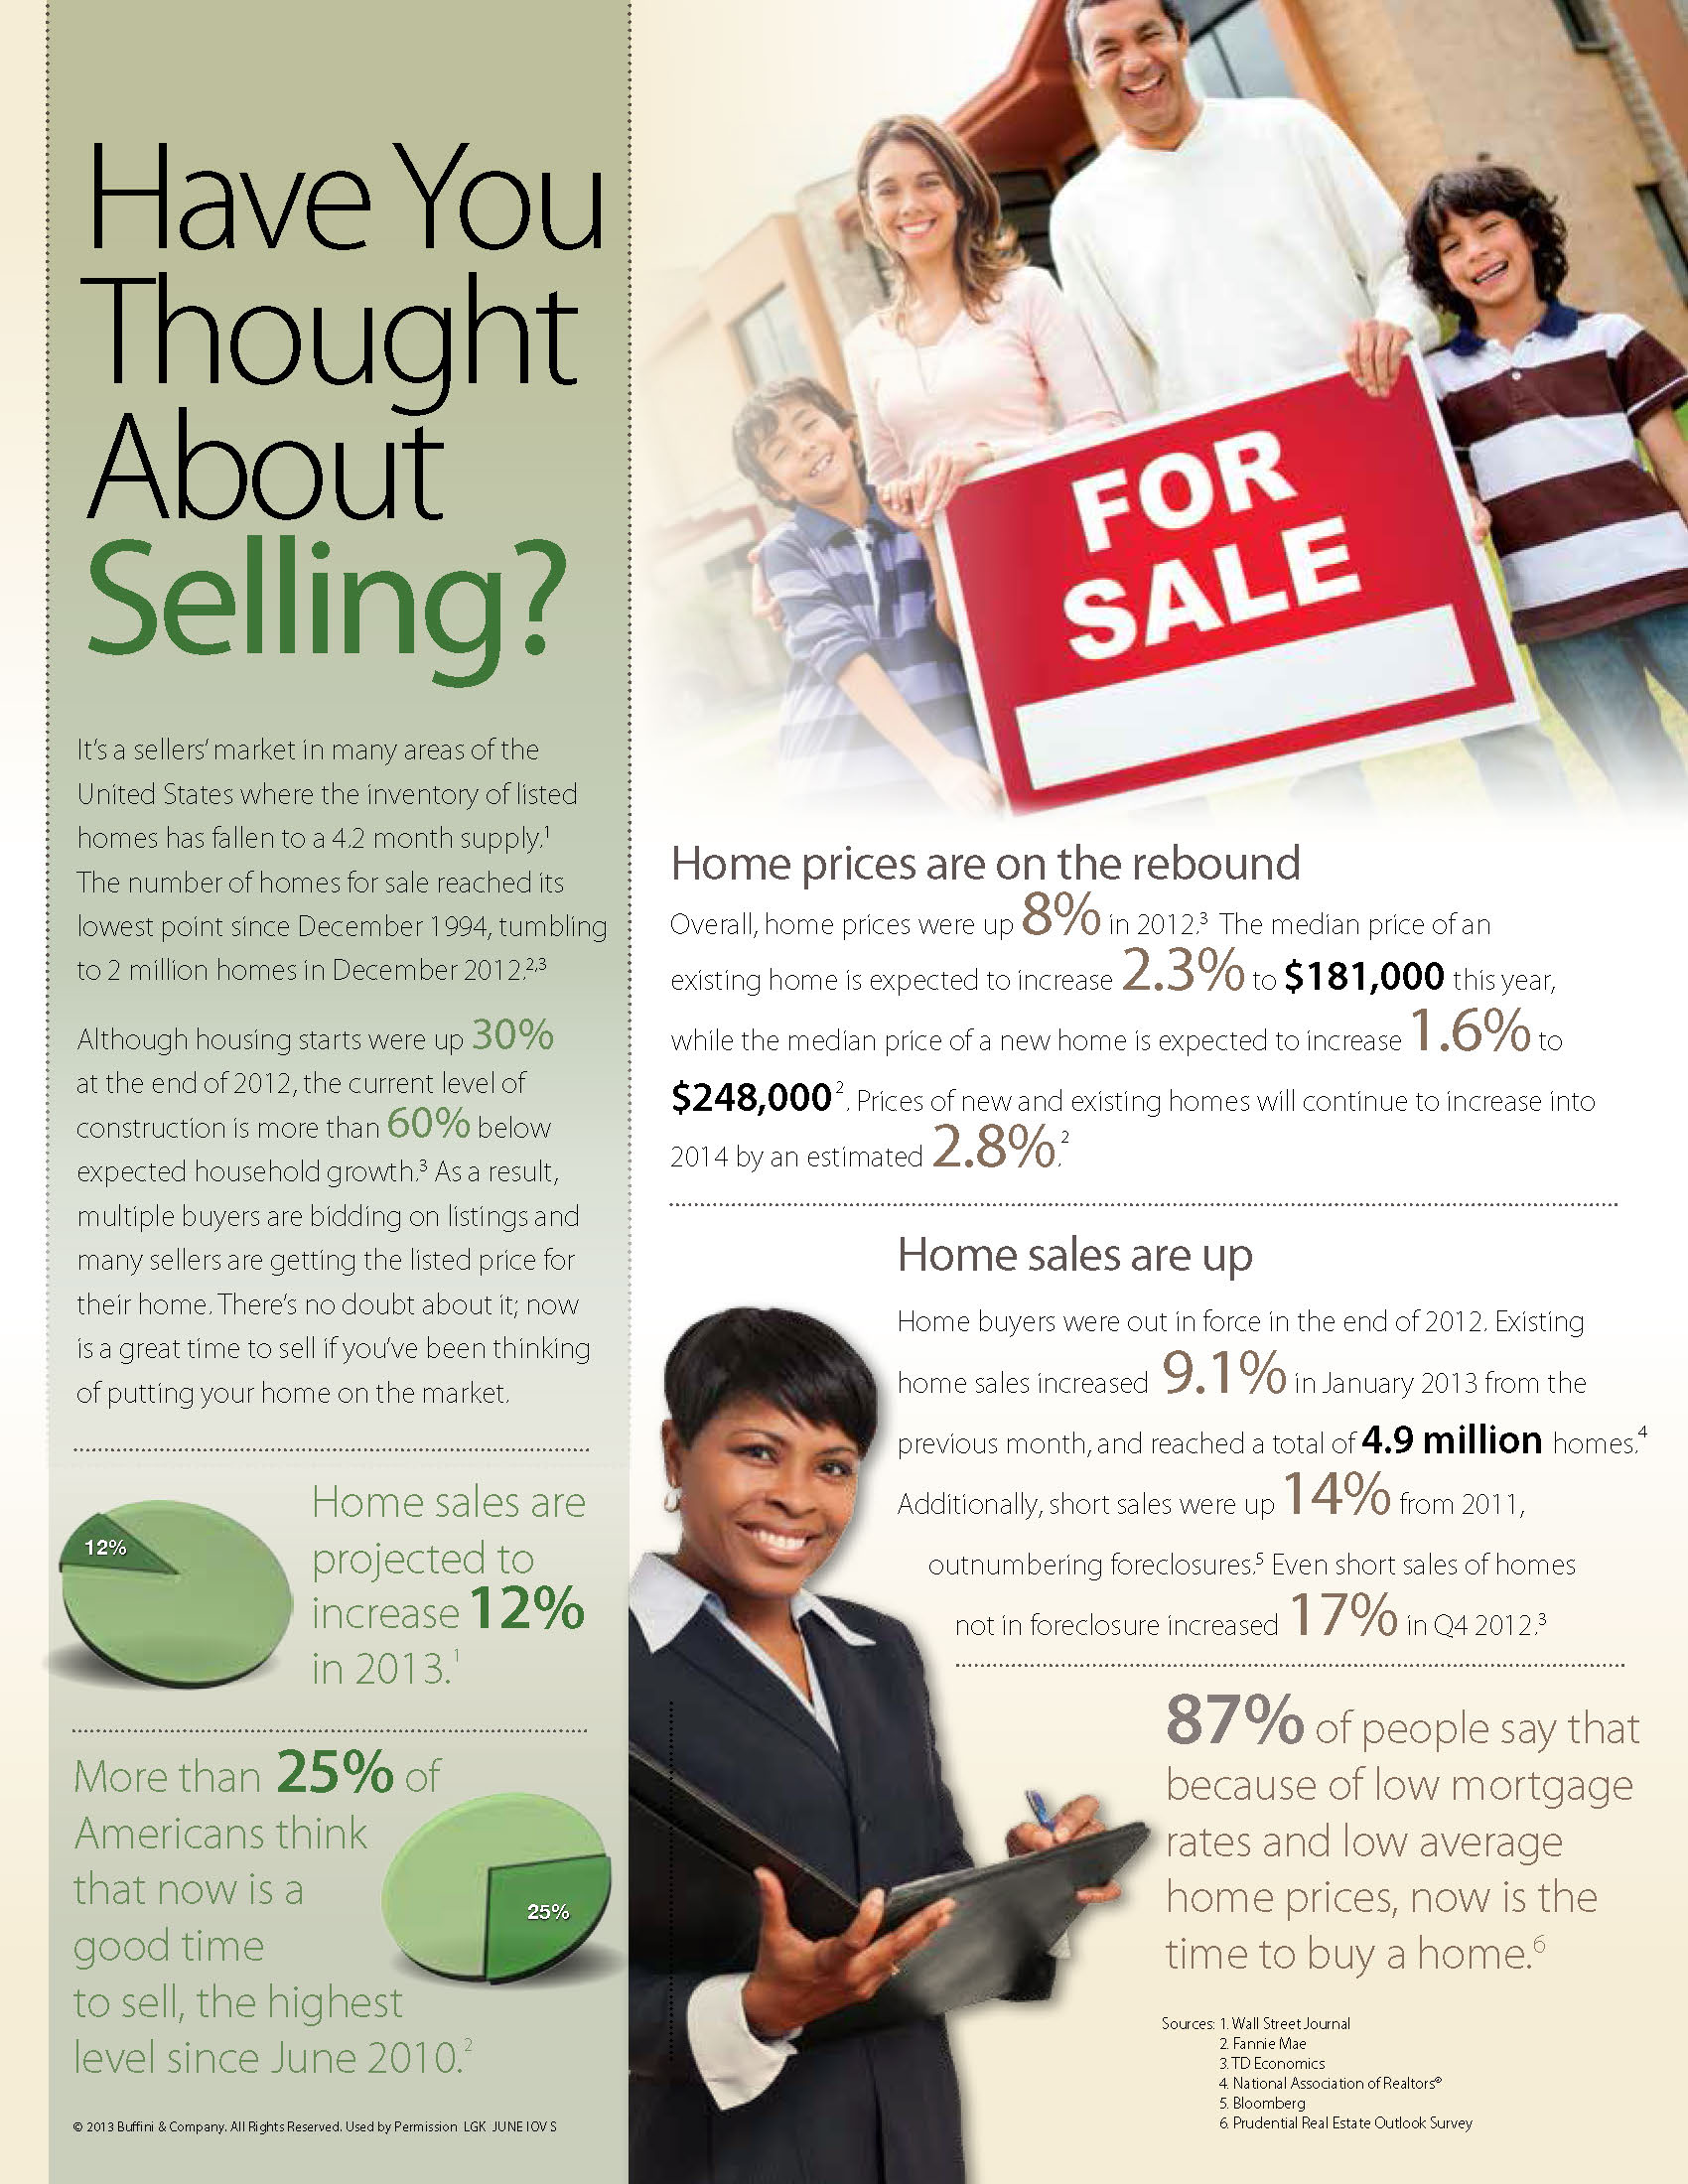 Have You Thought About Selling